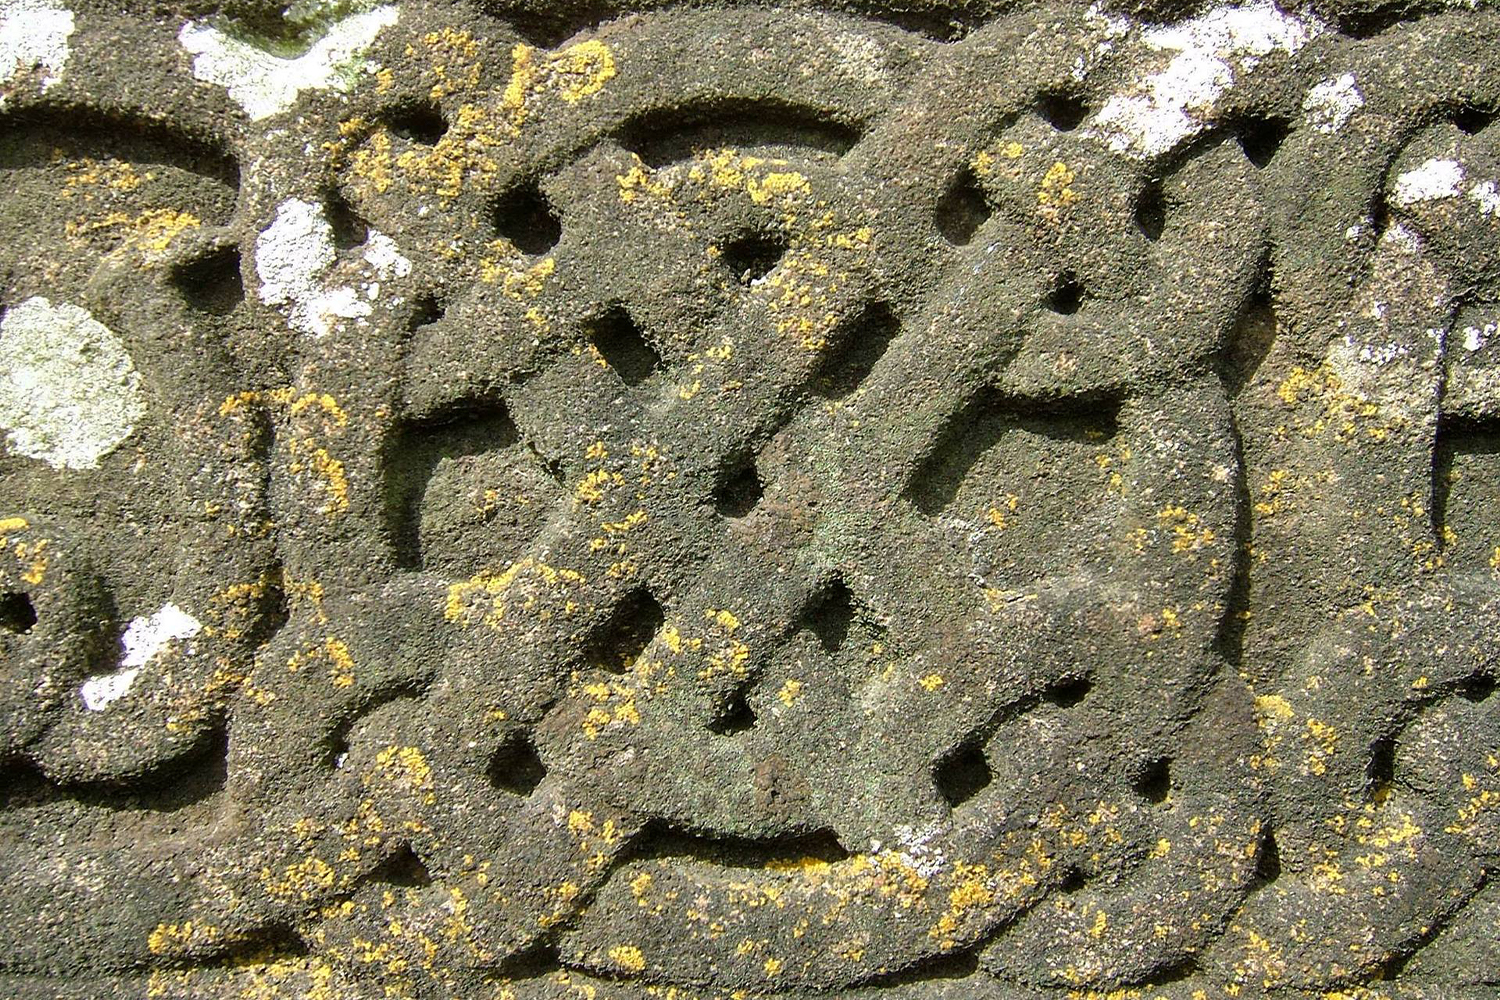 Image of a Celtic knot design on stone with moss